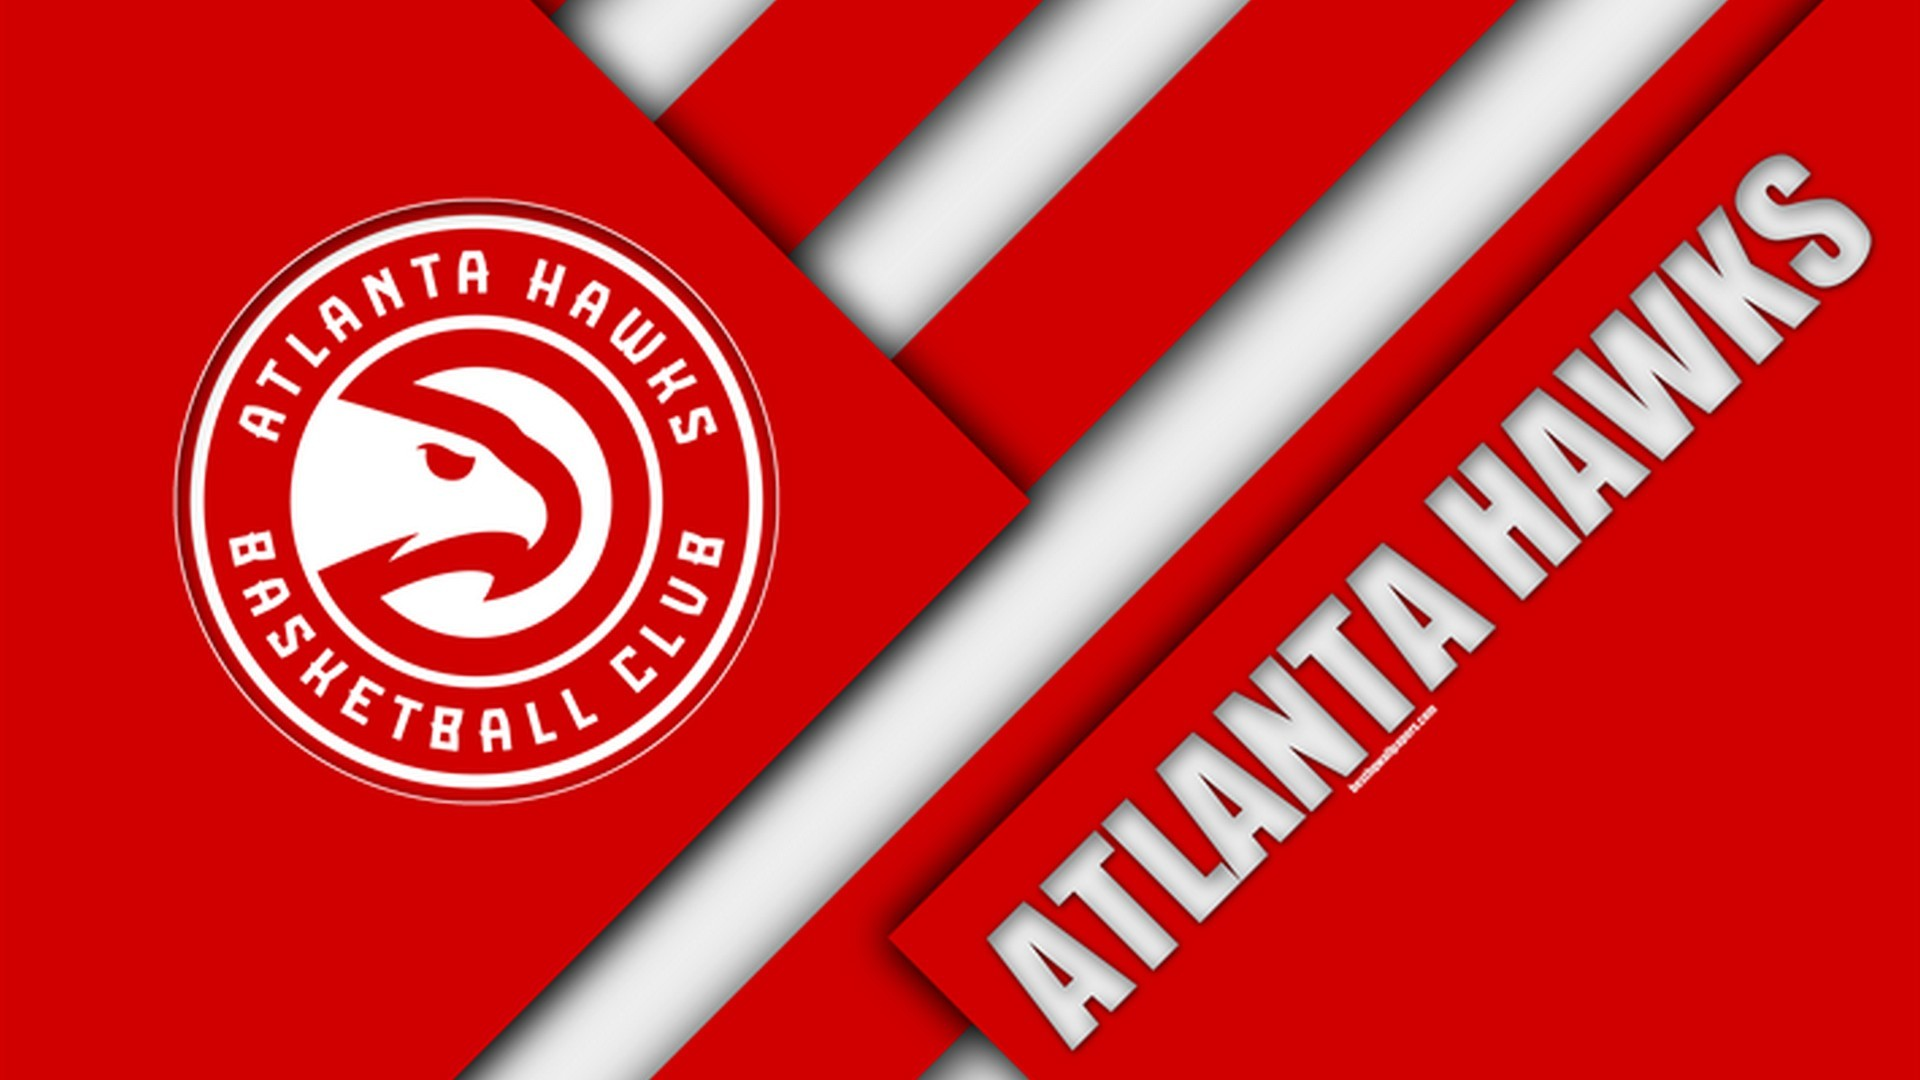 1920x1080 Wallpapers Atlanta Hawks with image dimensions  pixel. You can  make this wallpaper for your